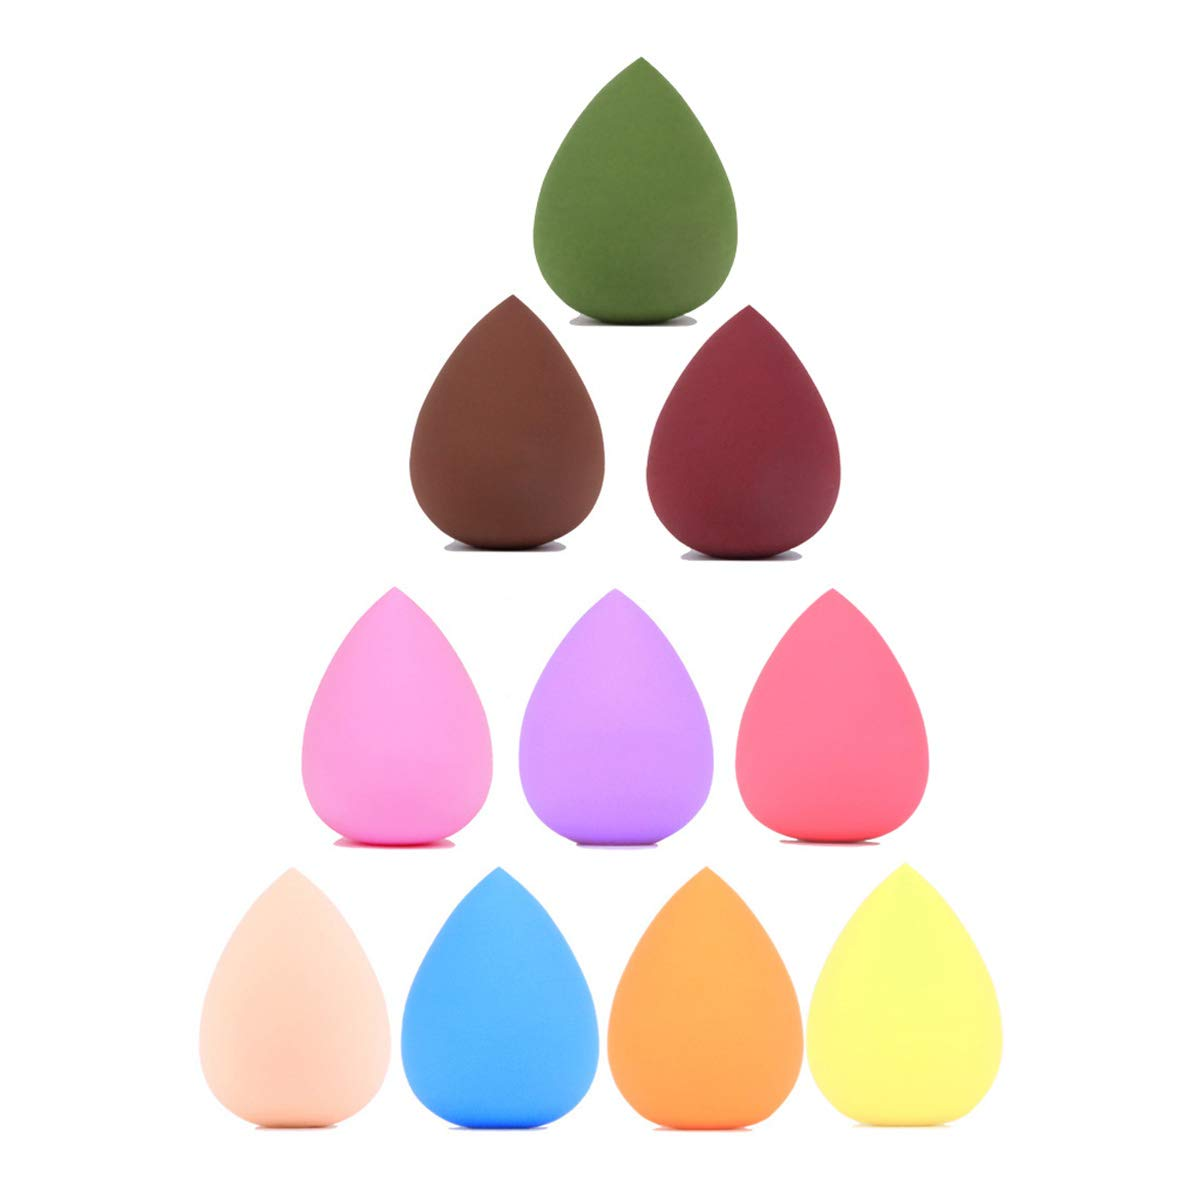 5PCS Makeup Sponge Set, Blender Beauty with Multiple Color, Latex-Free, Water Drop Shape, Both Dry and Wet, for Liquid Foundation, Cream (Random Color Delivery)